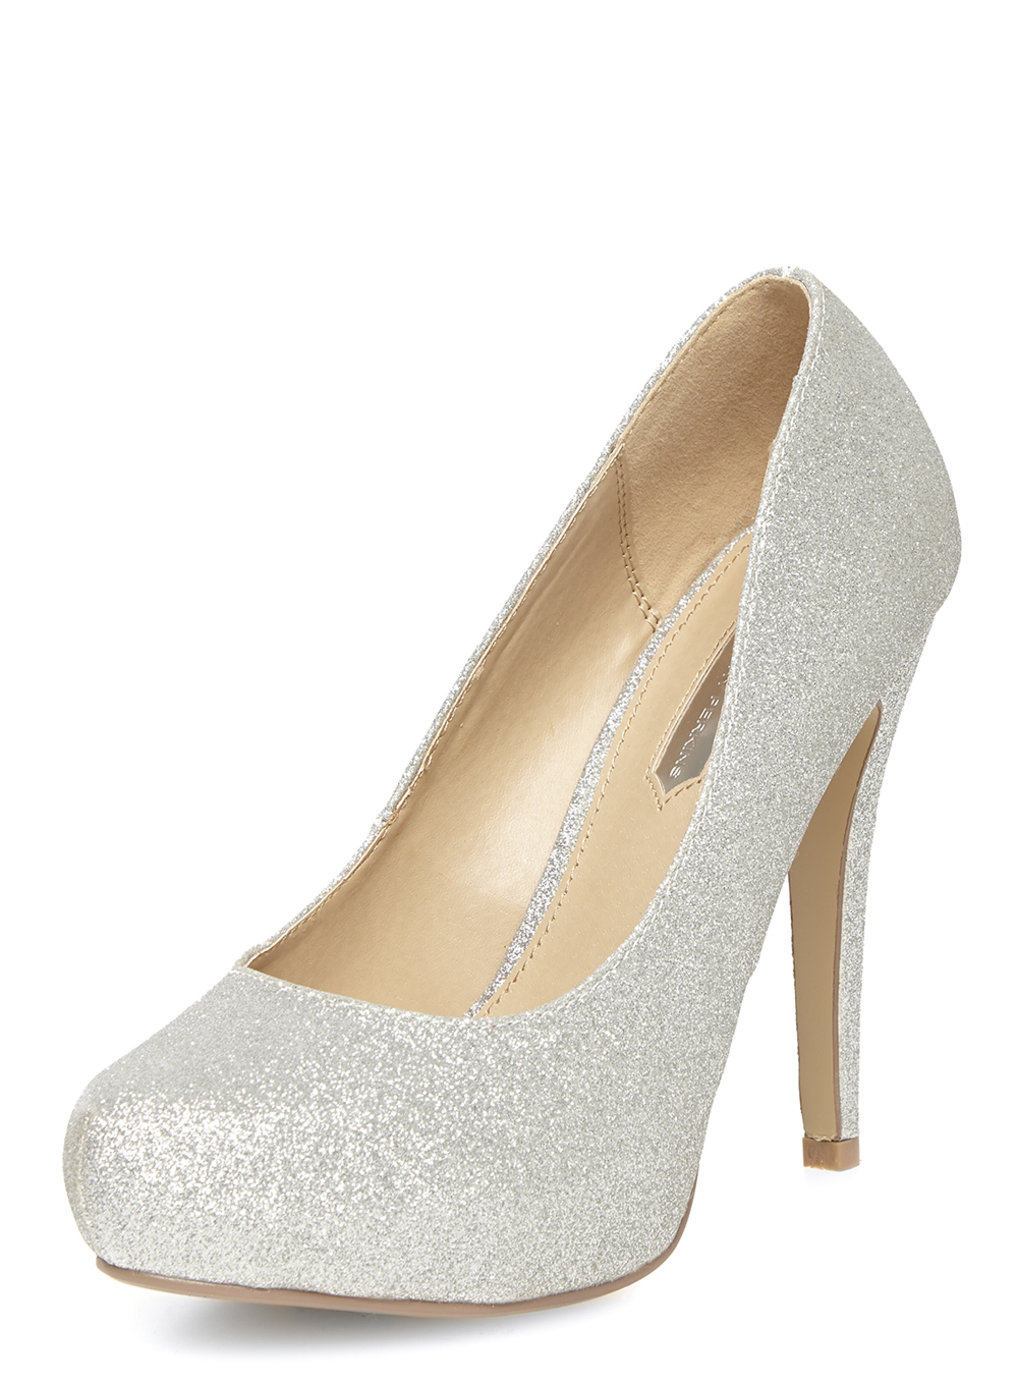 glitter outfits, sparkly shoes, glitter shoes, lovesales